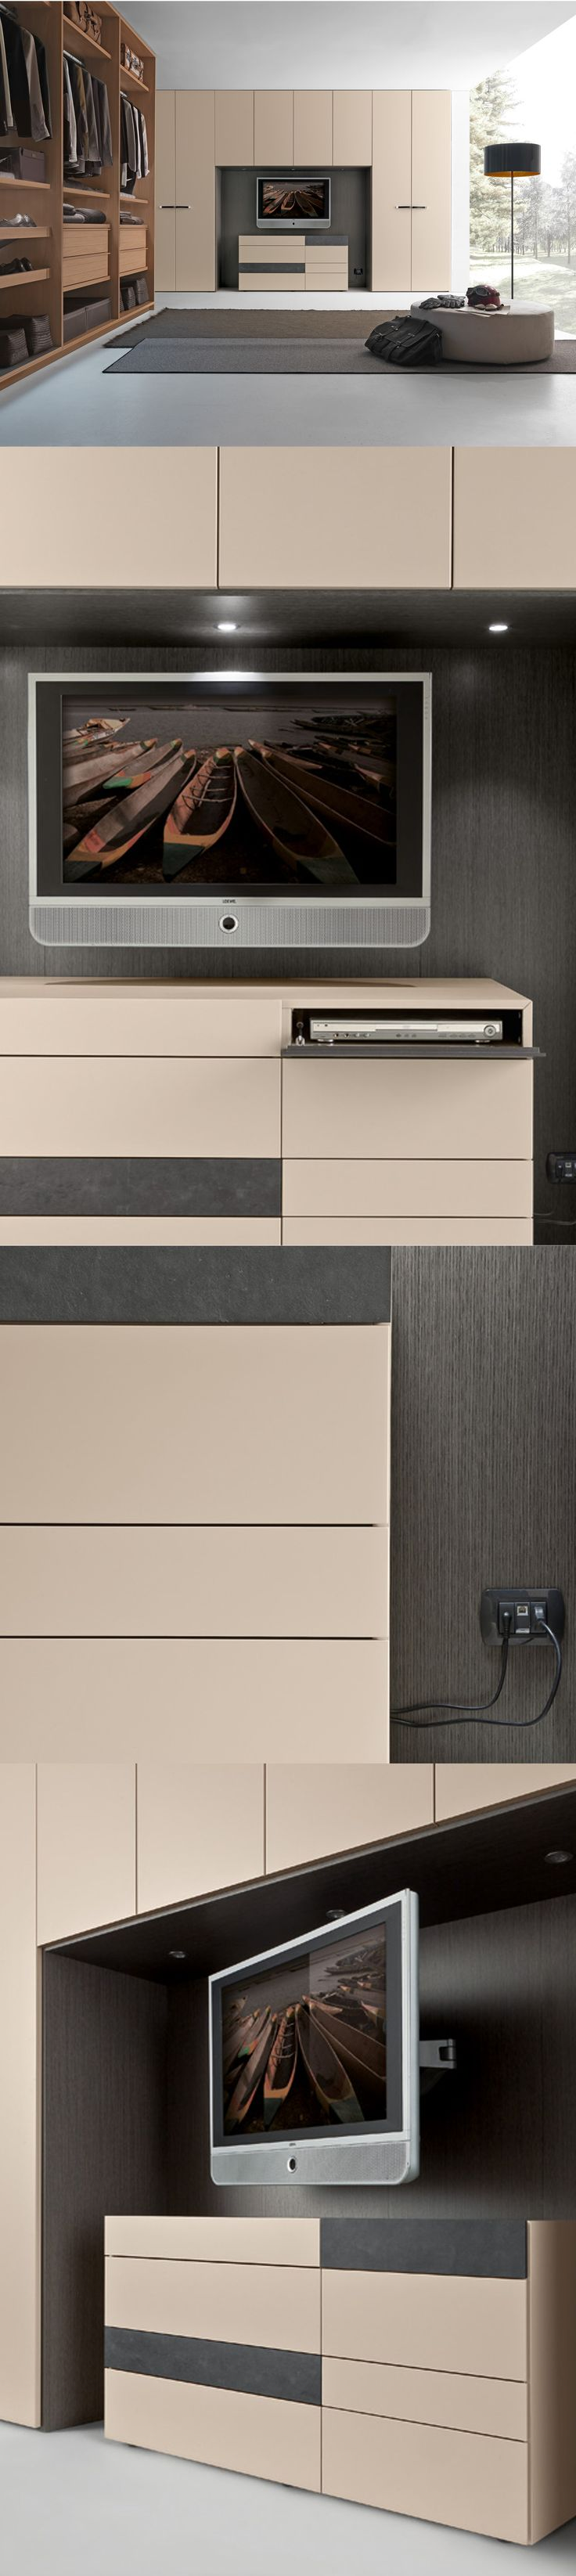 PRESOTTO | #Wardrobe with bridging module in matt corda lacquered with back panels in grey oak. In front the Wing #dresser has a compartment with a fl ap door for electronic equipment. _ #Armadio con modulo ponte in laccato opaco corda e pannelli schienale sottoponte in rovere grigio. Davanti, il #comò Wing è dotato di vano con ribalta per l'alloggiamento di apparecchi elettronici.